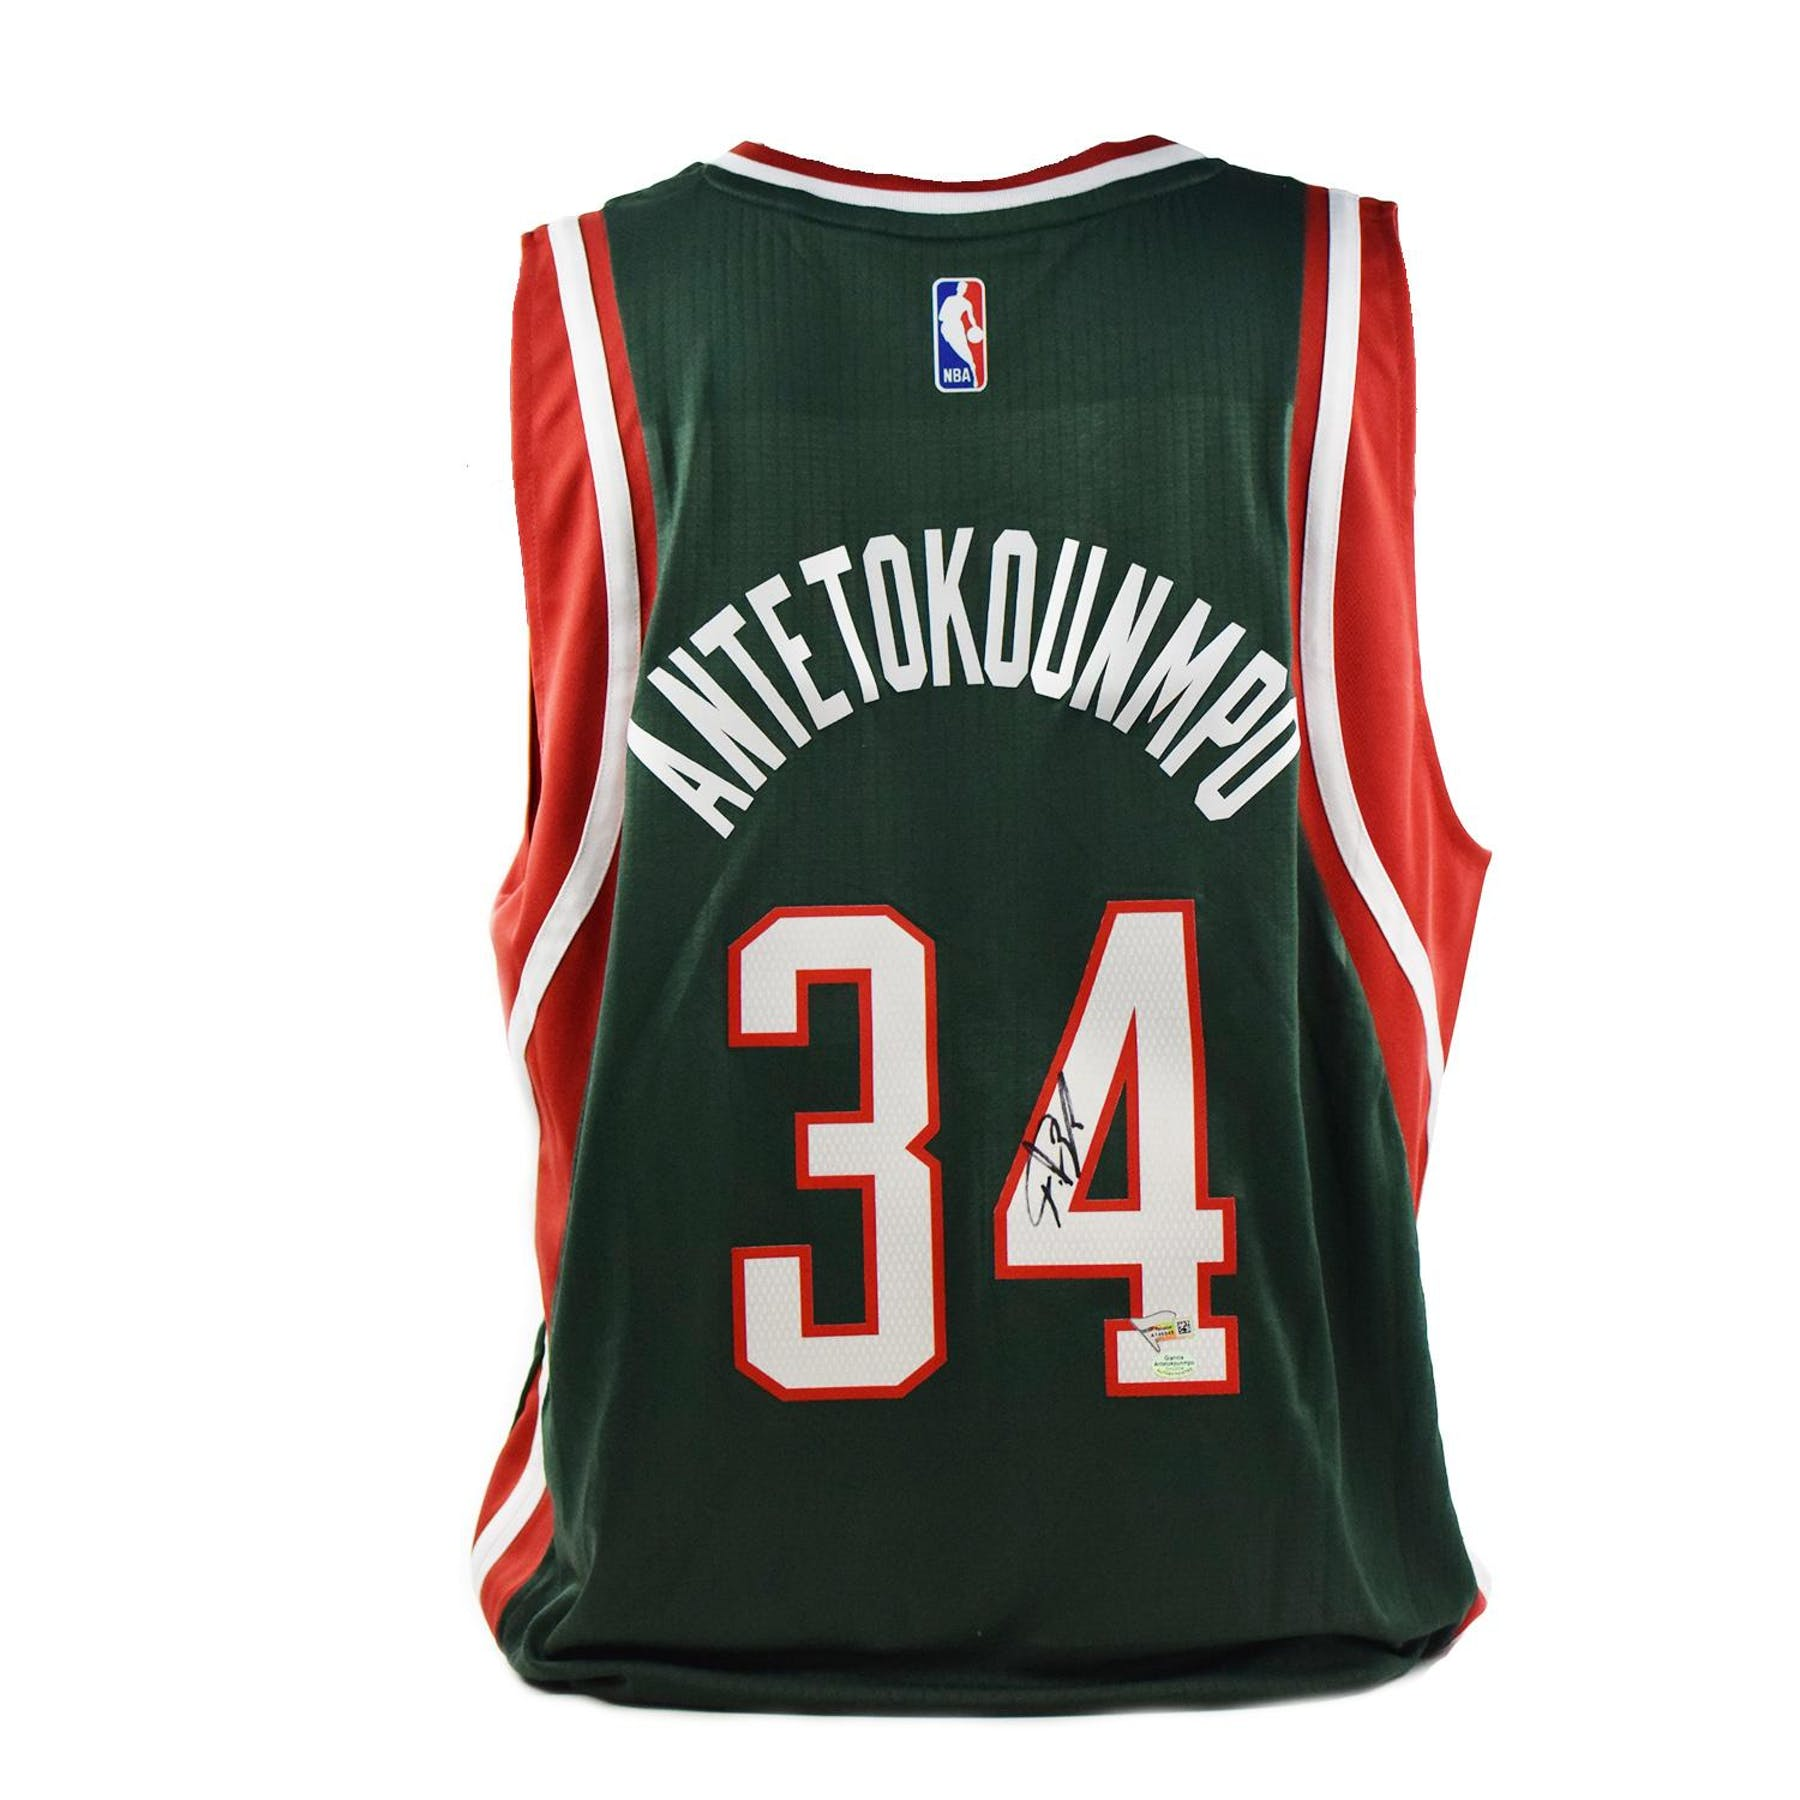 quality design 4d2ac fd8bb Giannis Antetokounmpo Autographed Milwaukee Bucks Adidas Basketball Jersey  (Fanatics)